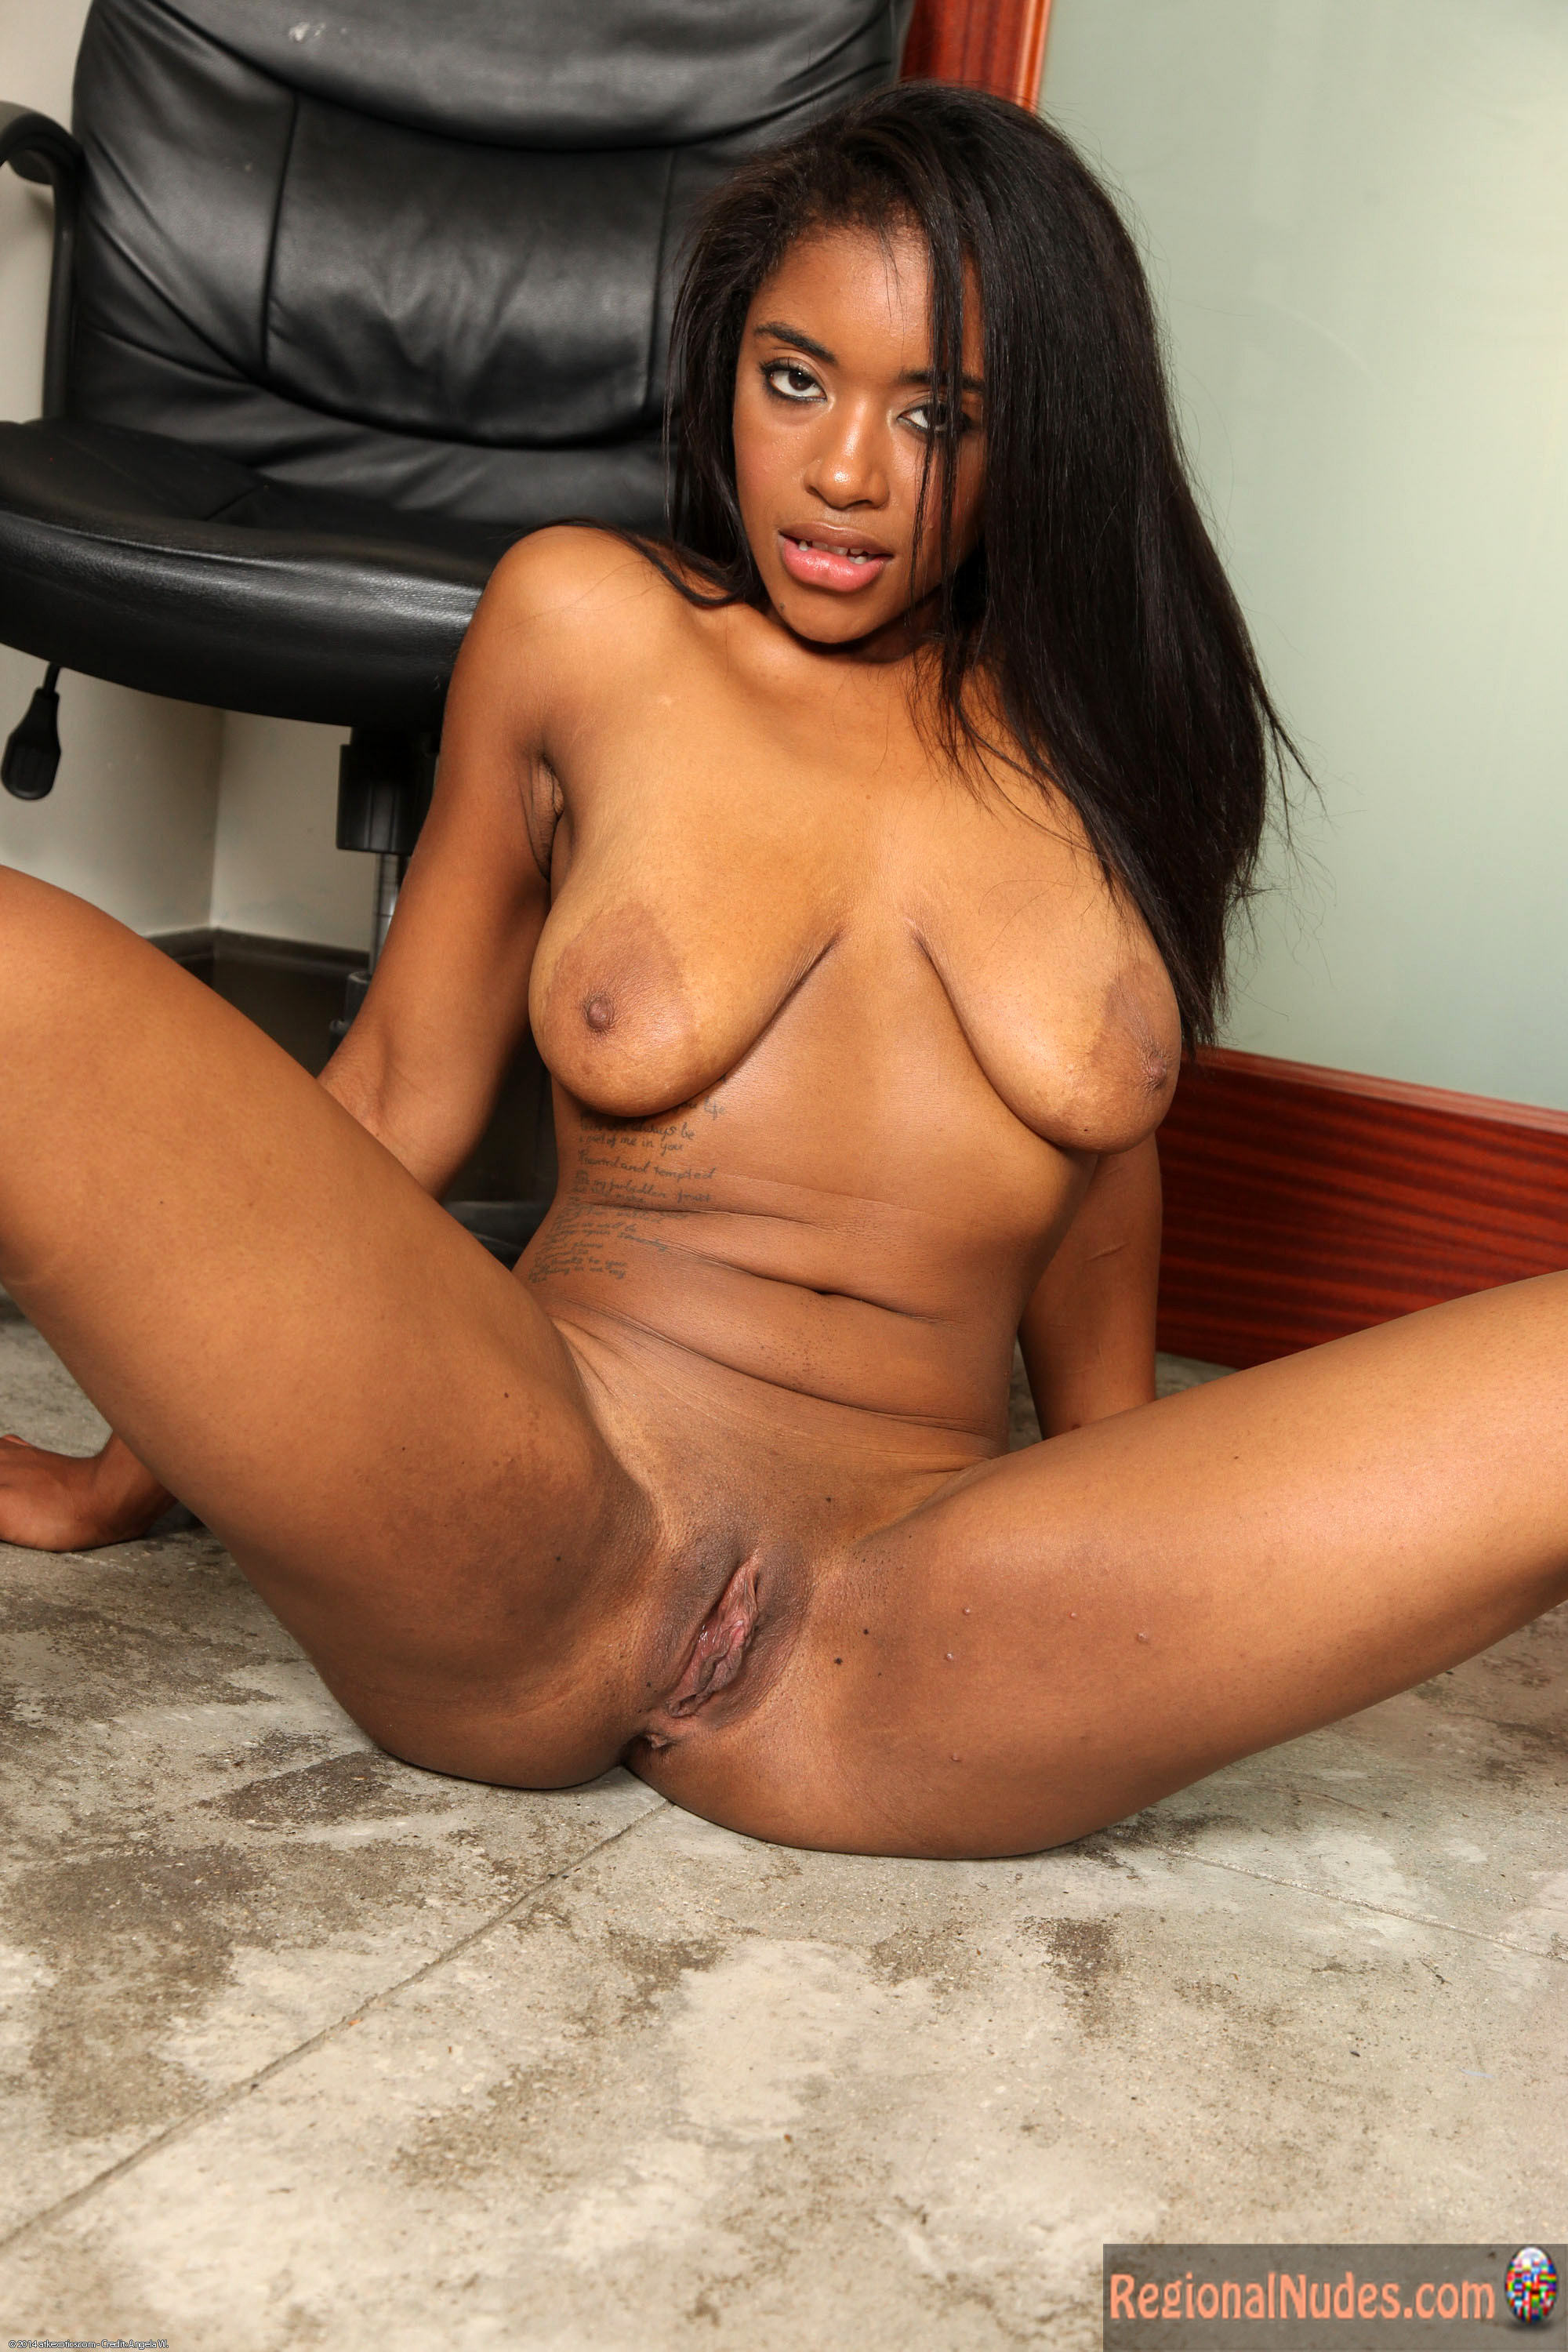 Are African american sexy nude women consider, that